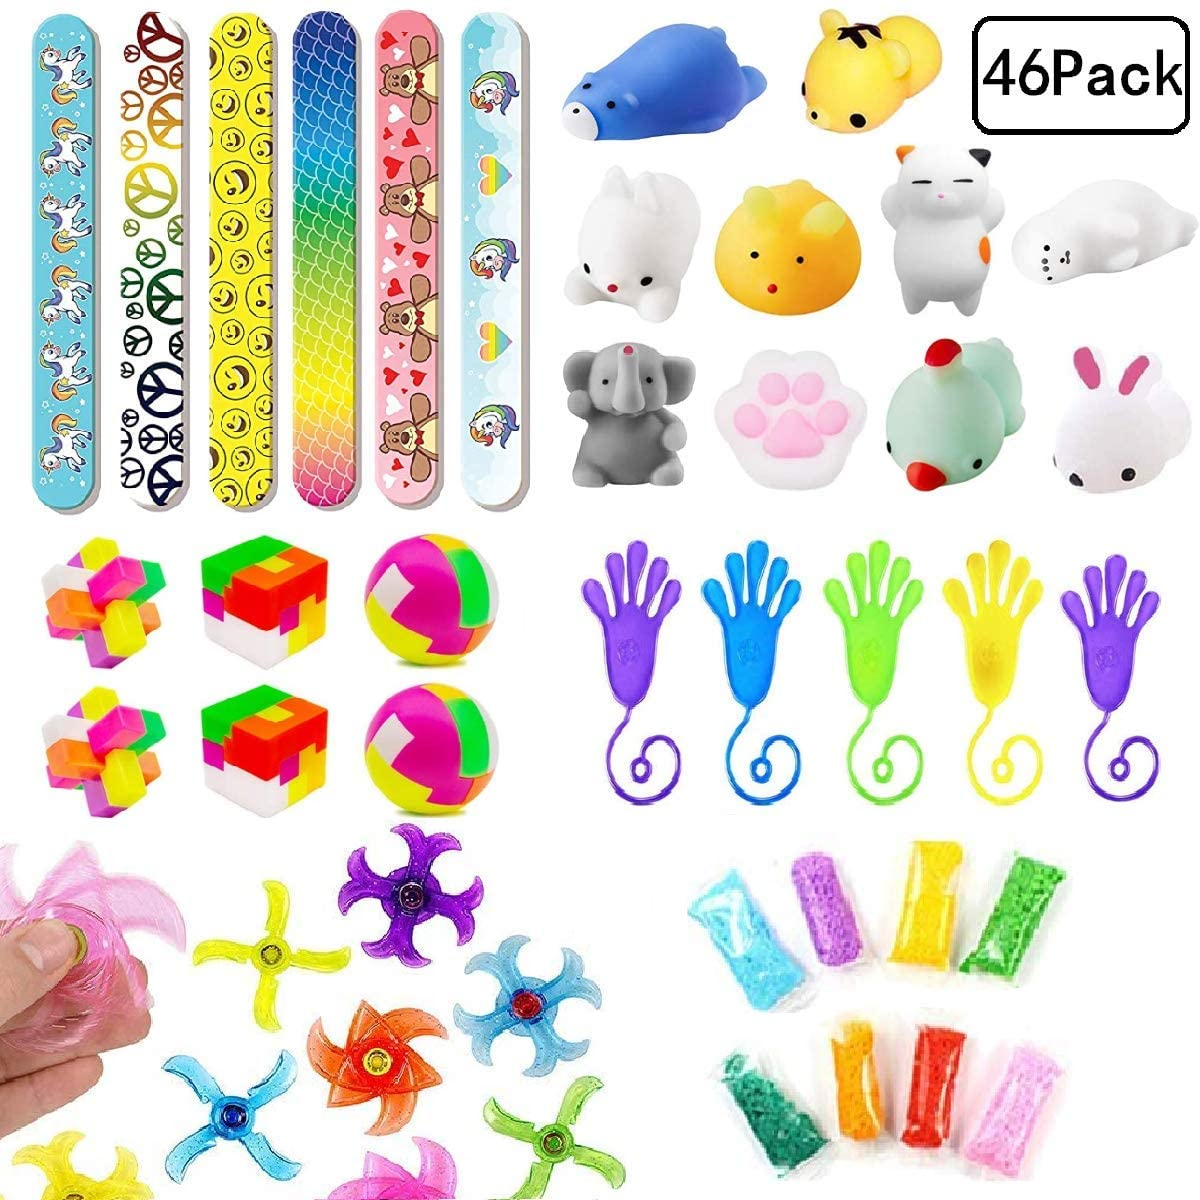 46 PCS Carnival Prizes for Kids Birthday Party Favors,Prizes Box Toy Assortment,Pinata Filler,Goodie Bag Fillers,Treasure Box Prizes,School Classroom Rewards,Christmas Stocking Stuffers